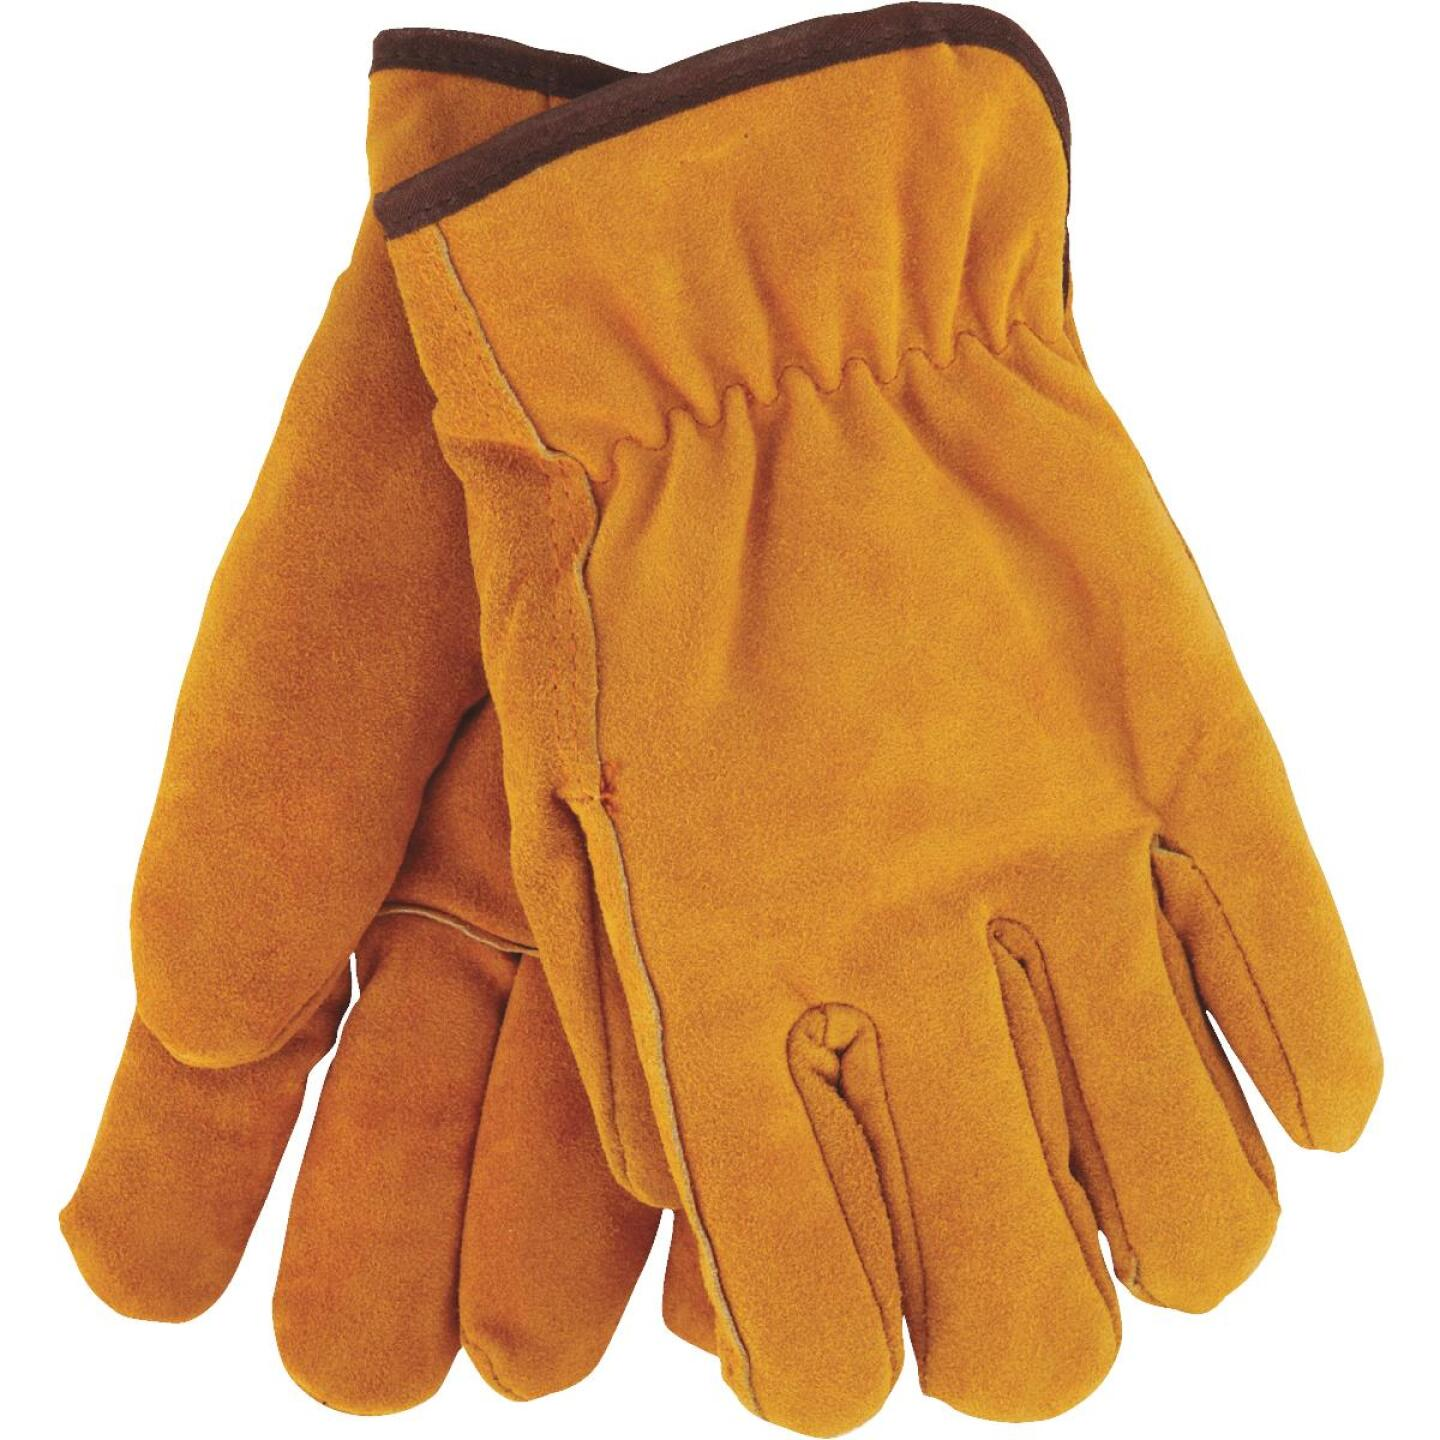 Do it Men's Medium Lined Leather Winter Work Glove Image 1